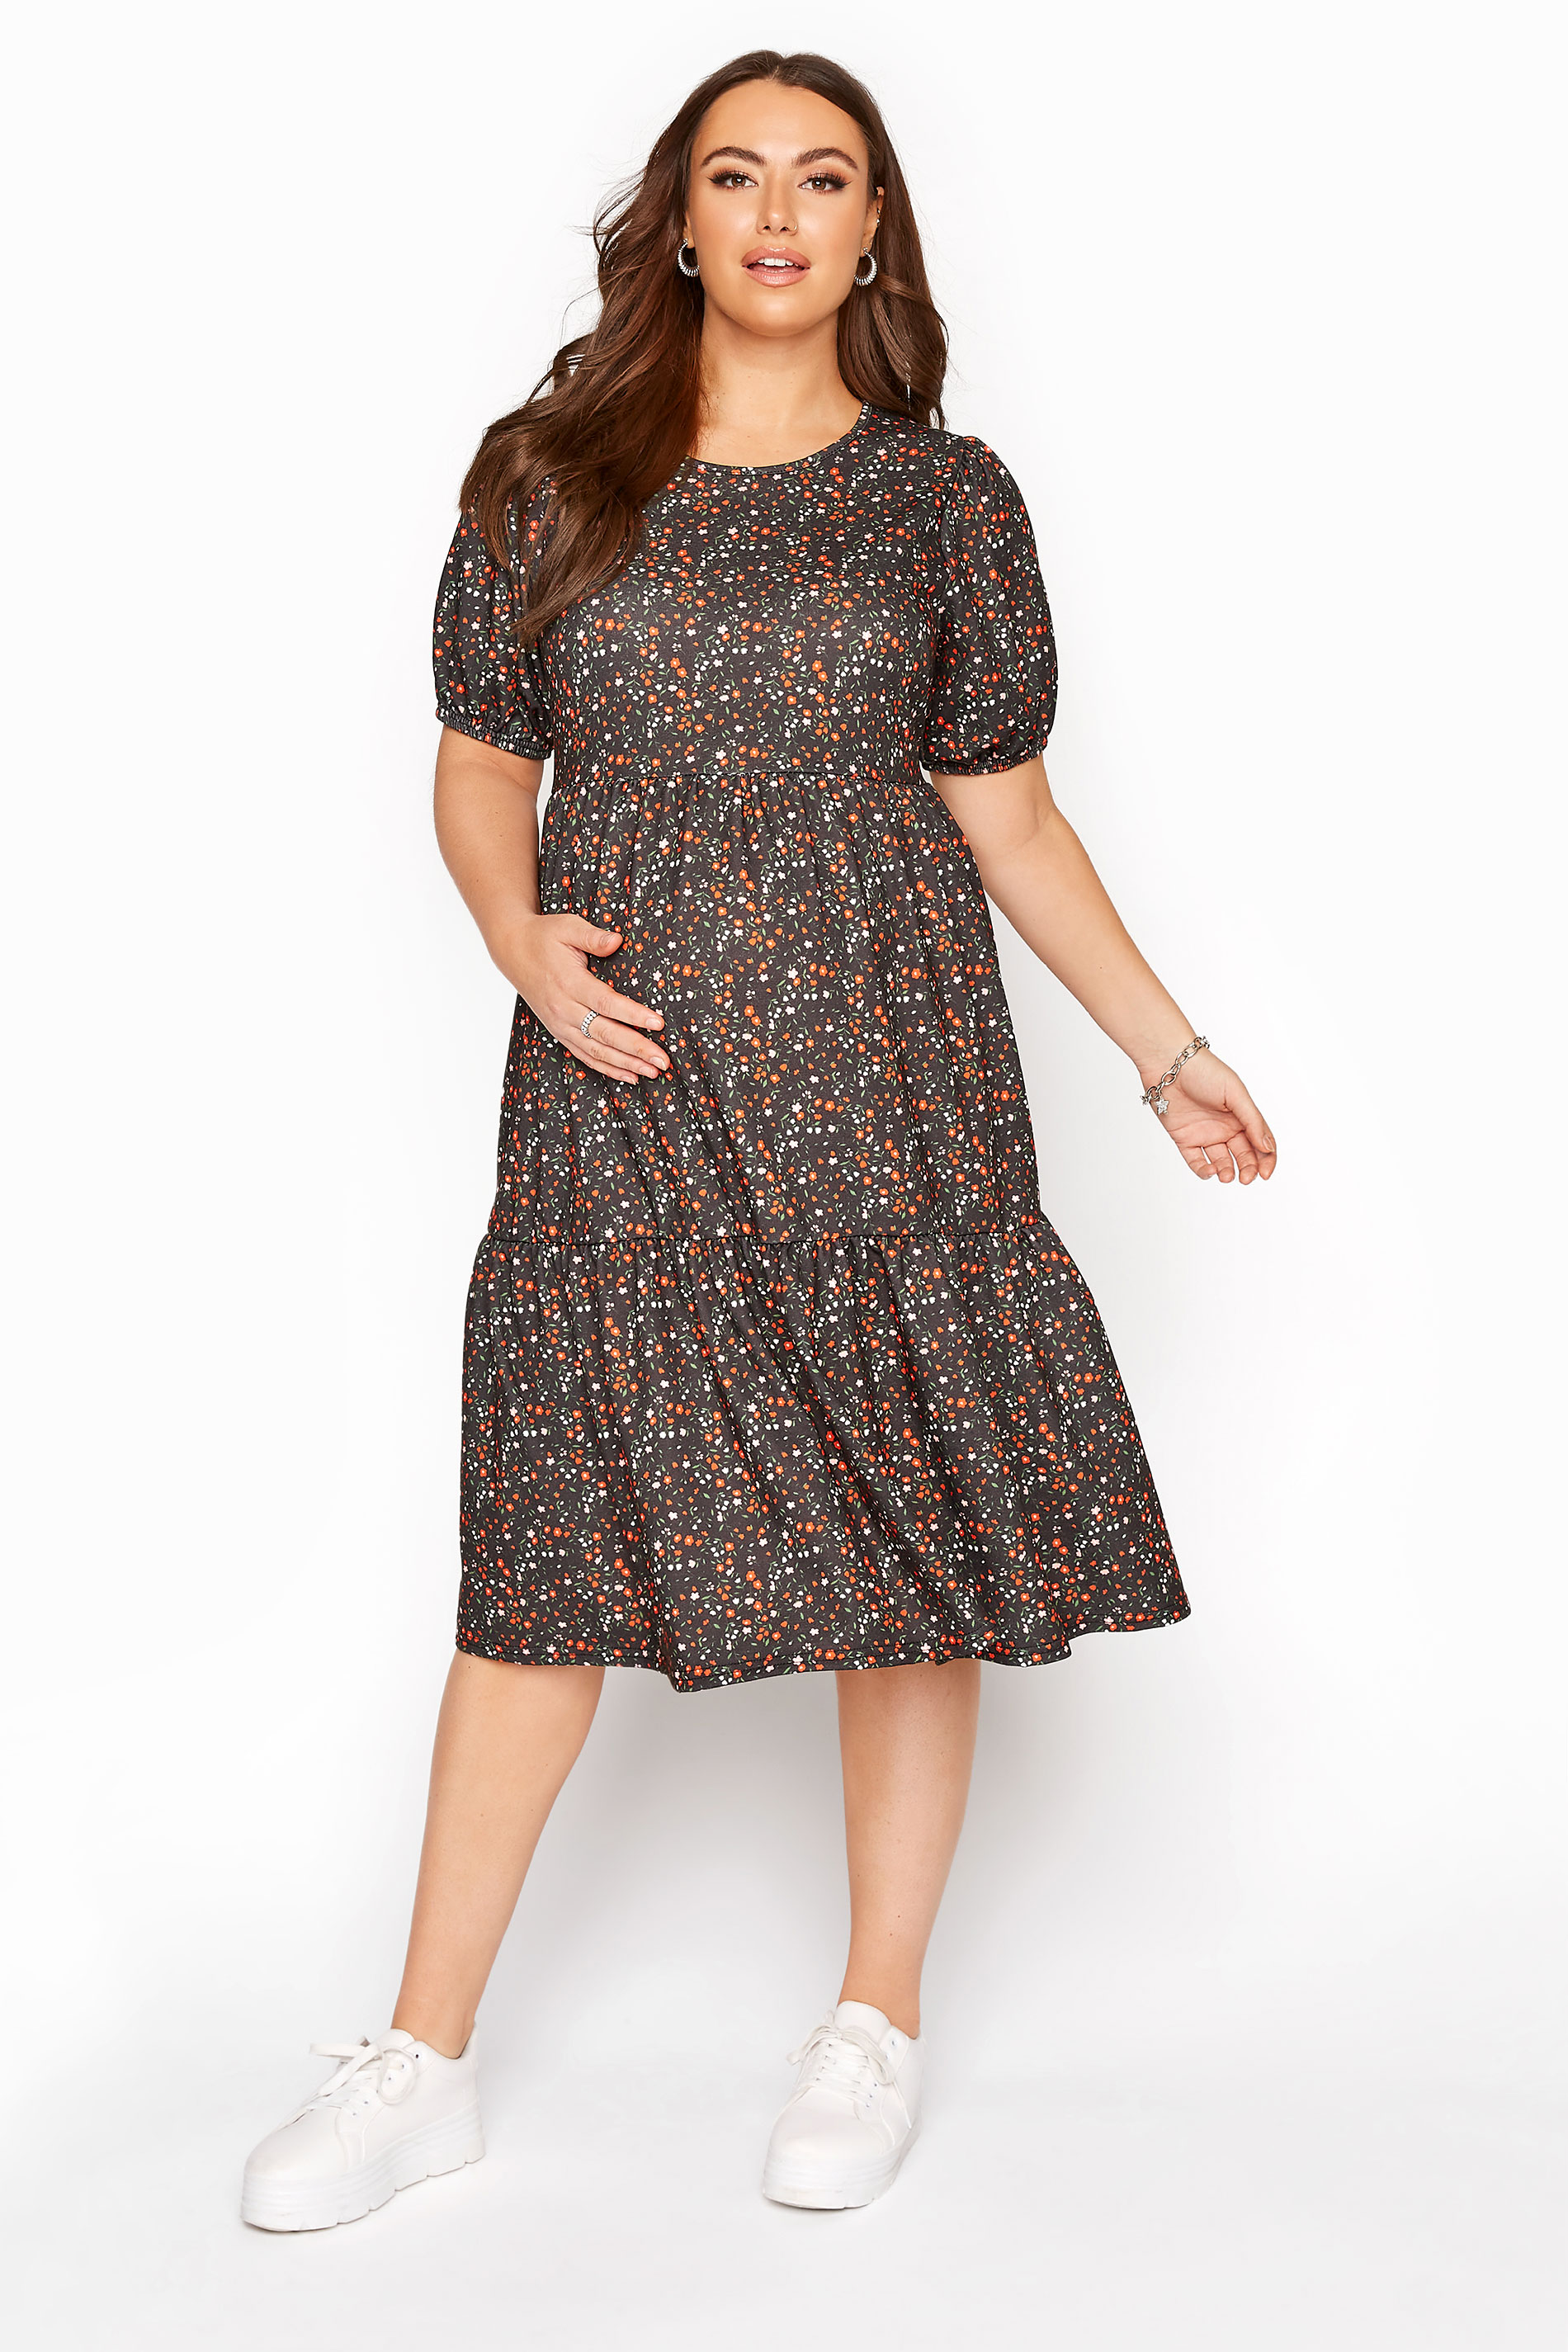 BUMP IT UP MATERNITY Black Floral Tiered Smock Dress_A.jpg